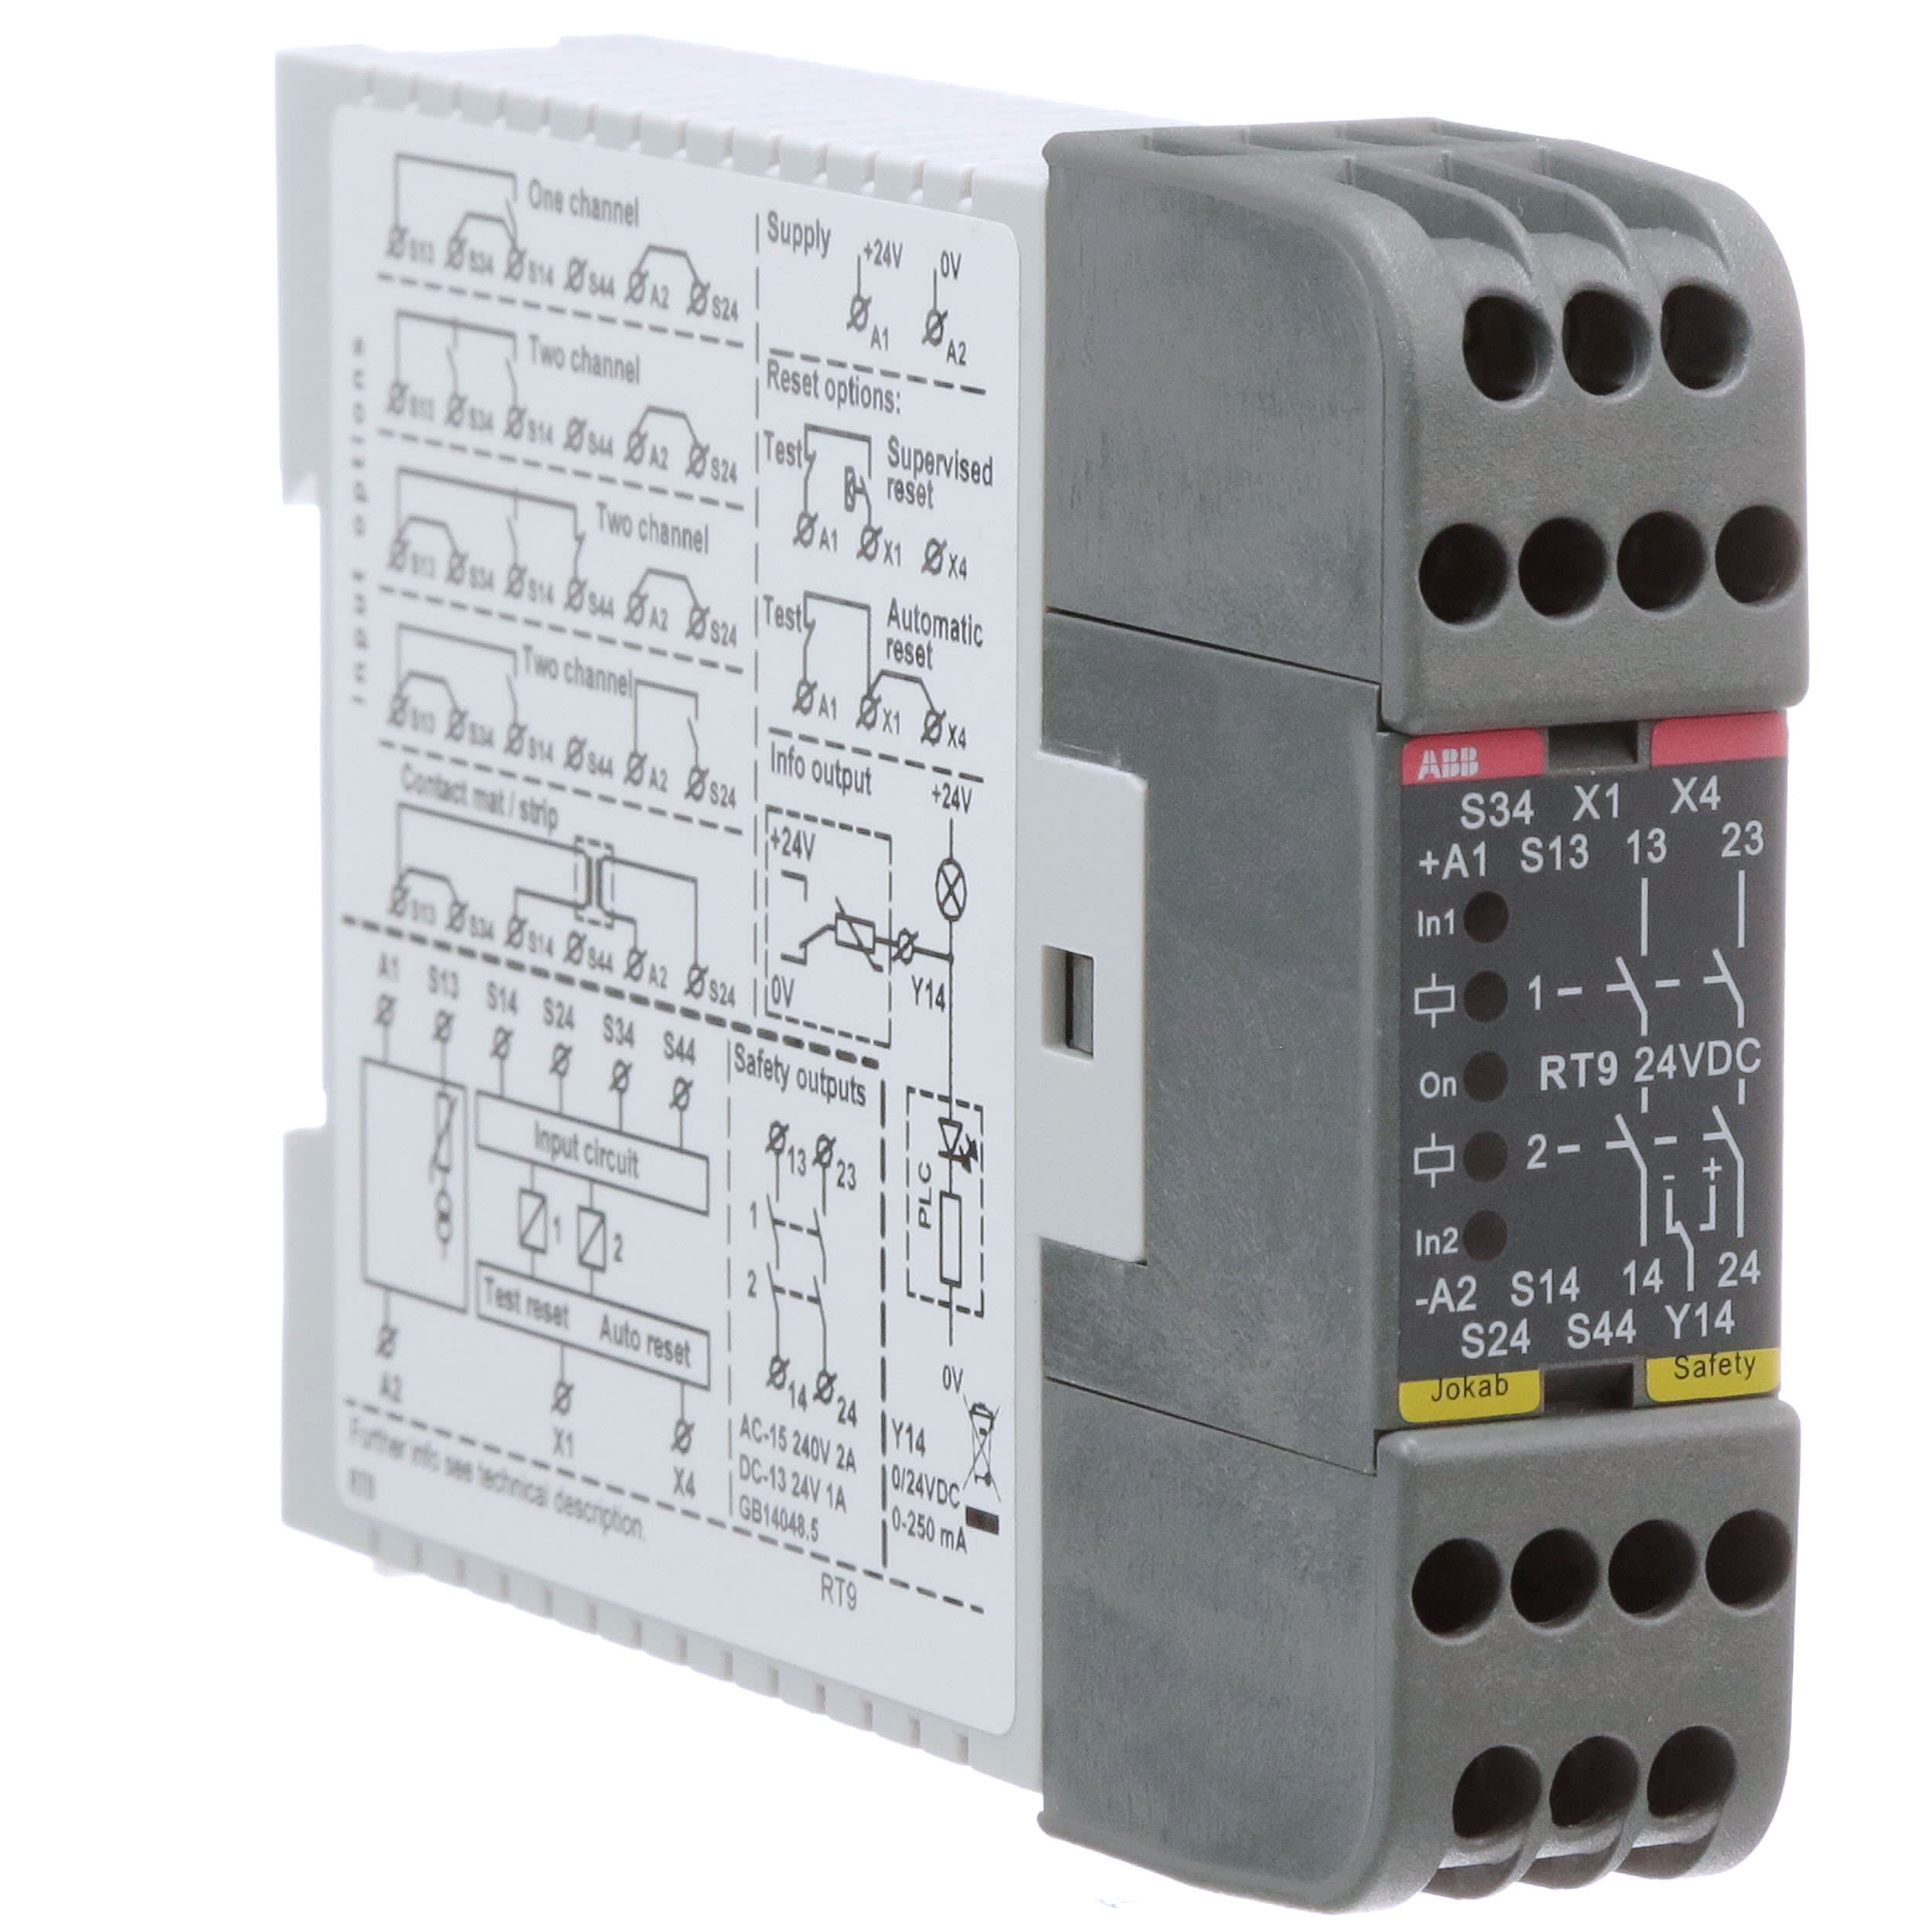 2TLA010029R0000 Abb Solid State Relay Wiring Diagram on